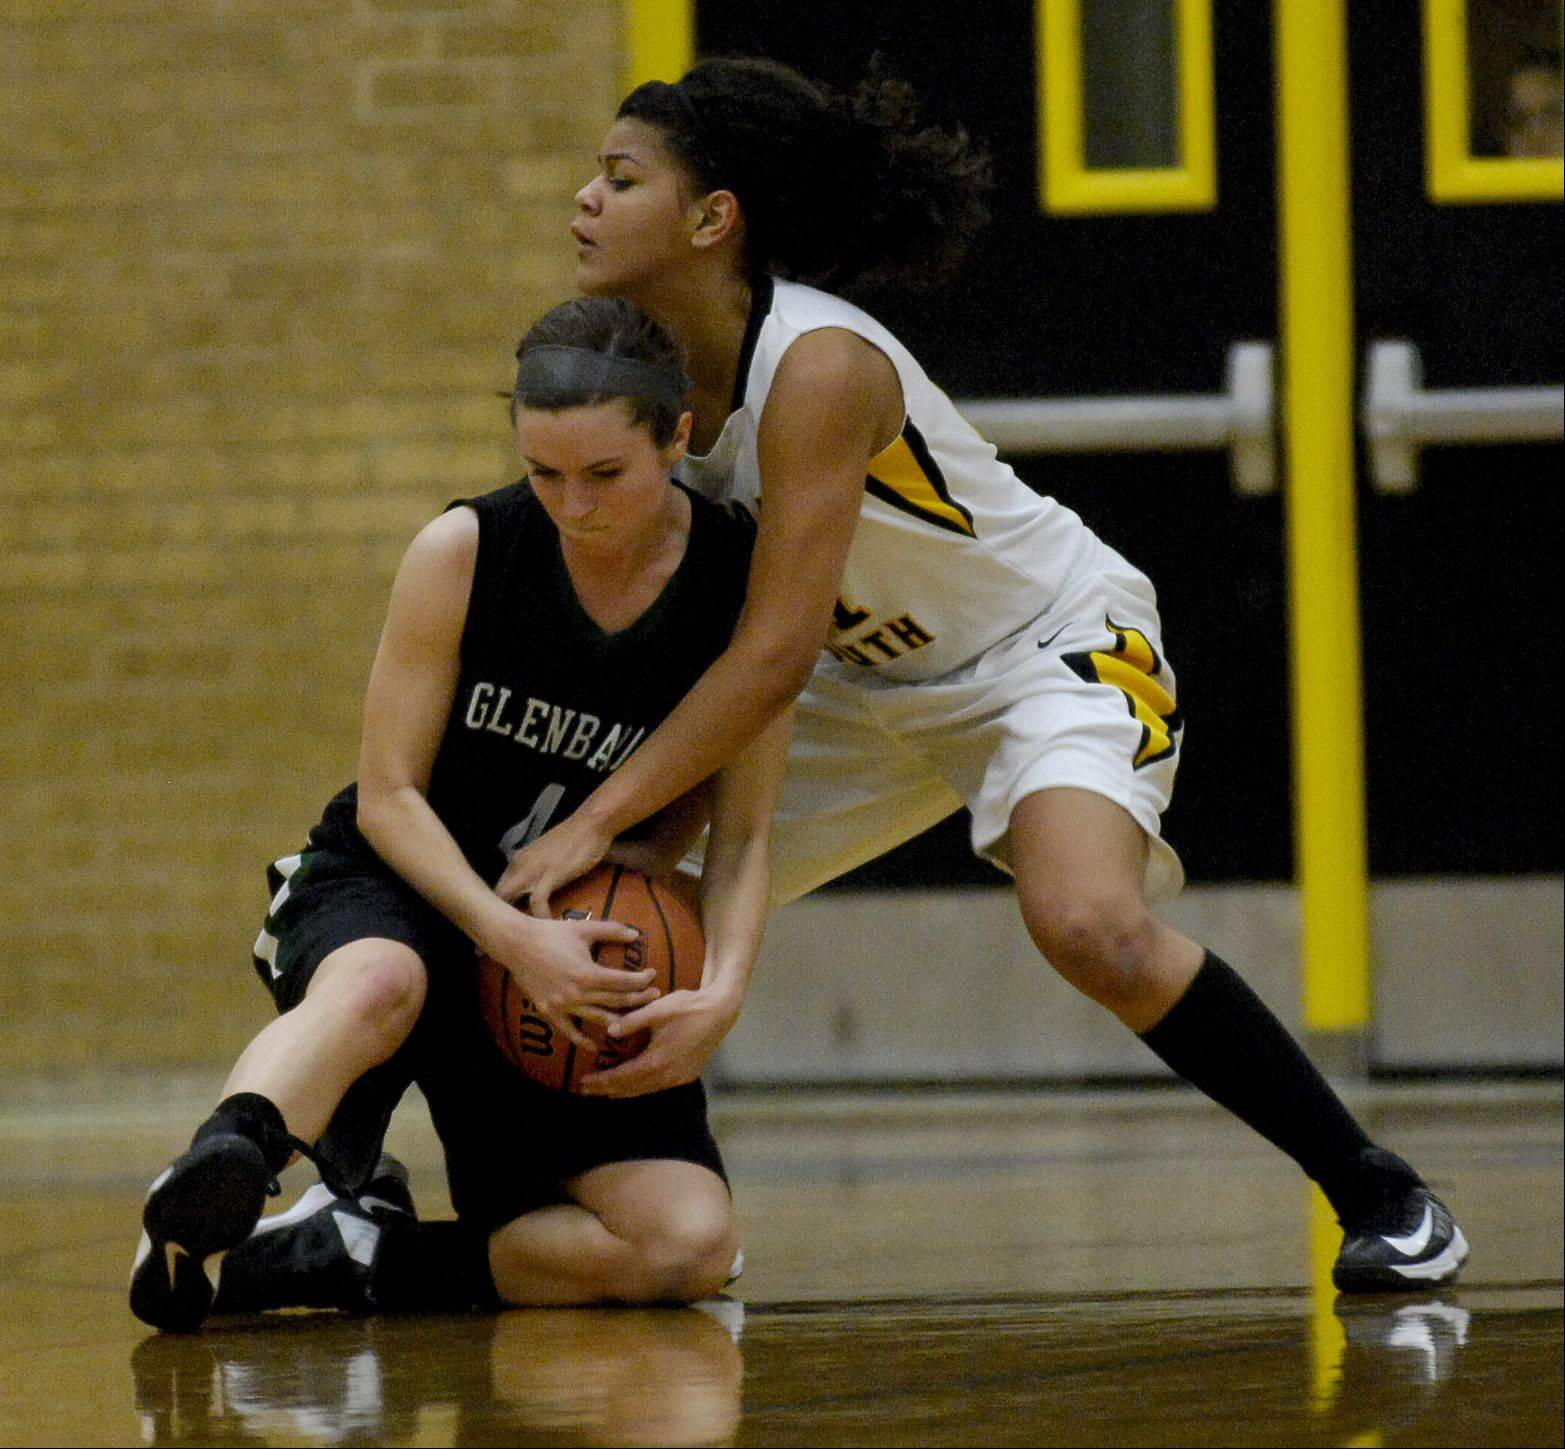 Tracy Flood of Glenbard West and Toni Romiti of Hinsdale South battle for control of the ball.